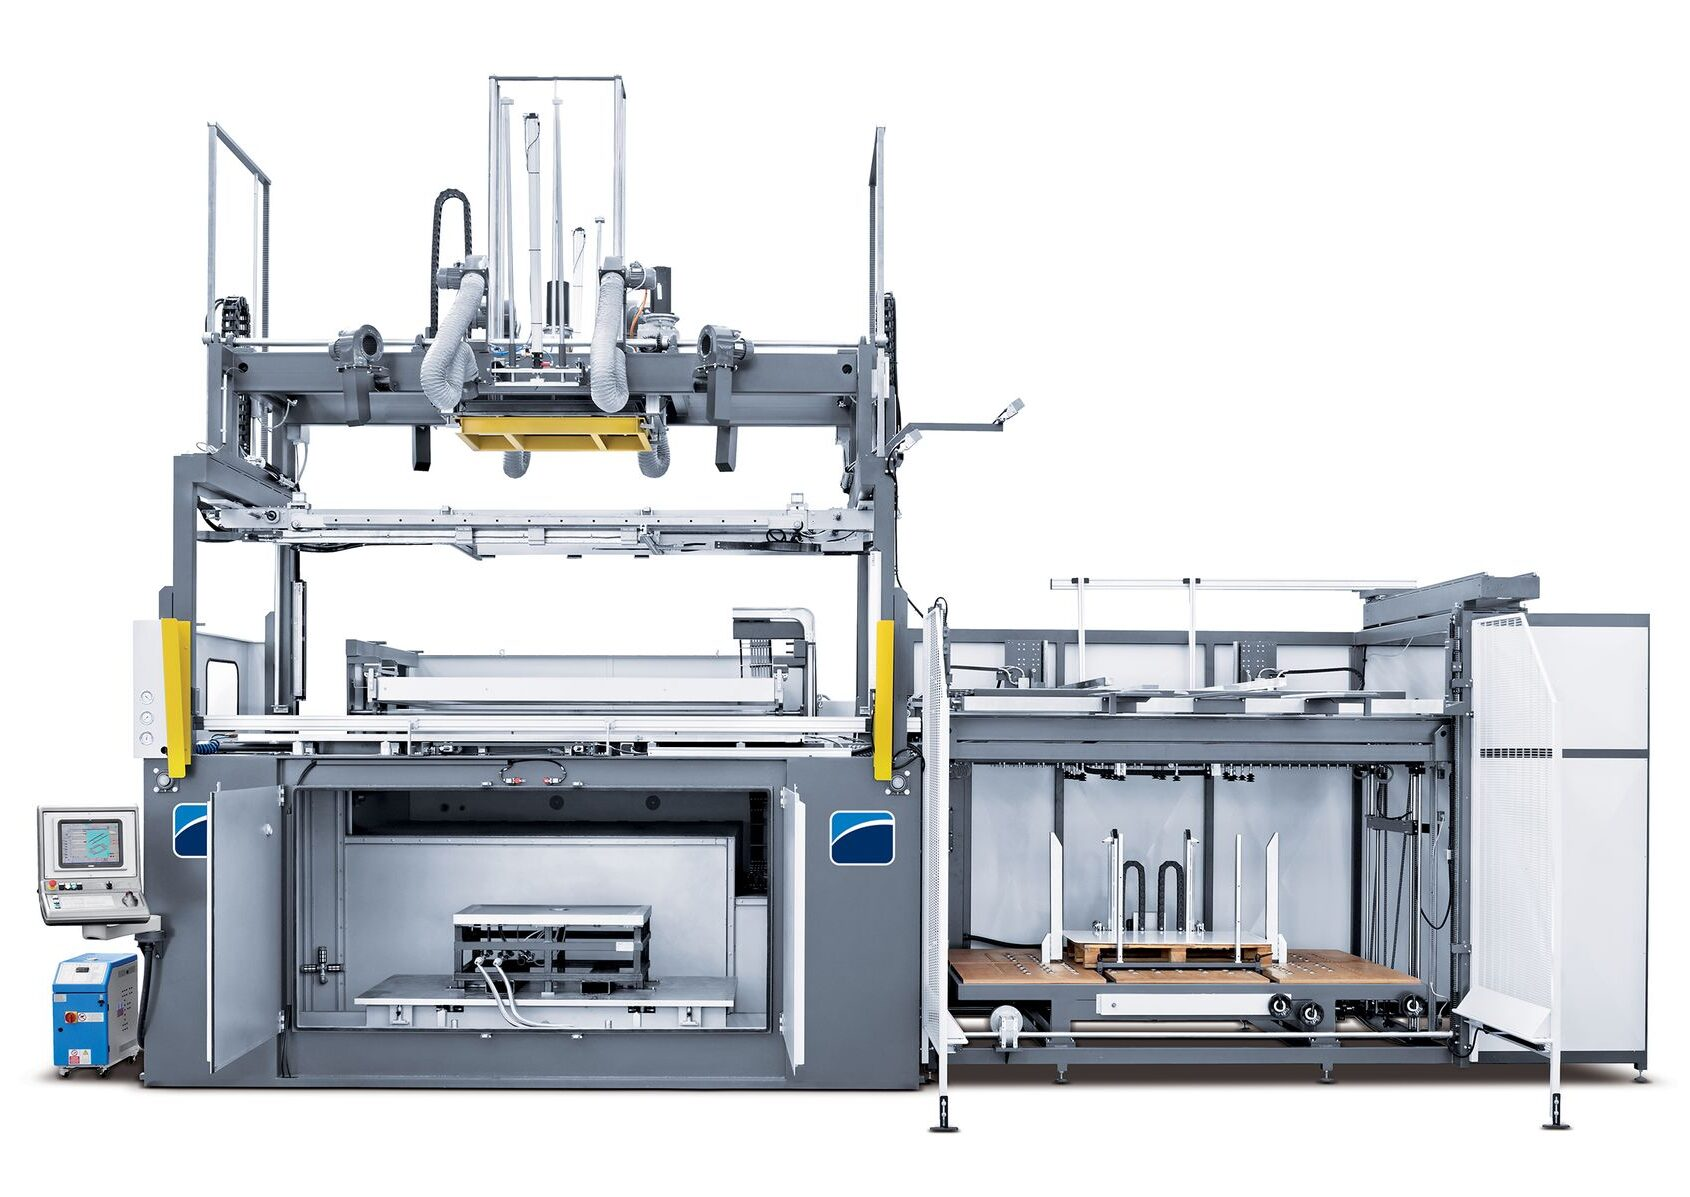 BR5 S@2x e1603161486869 - CMS Thermoforming